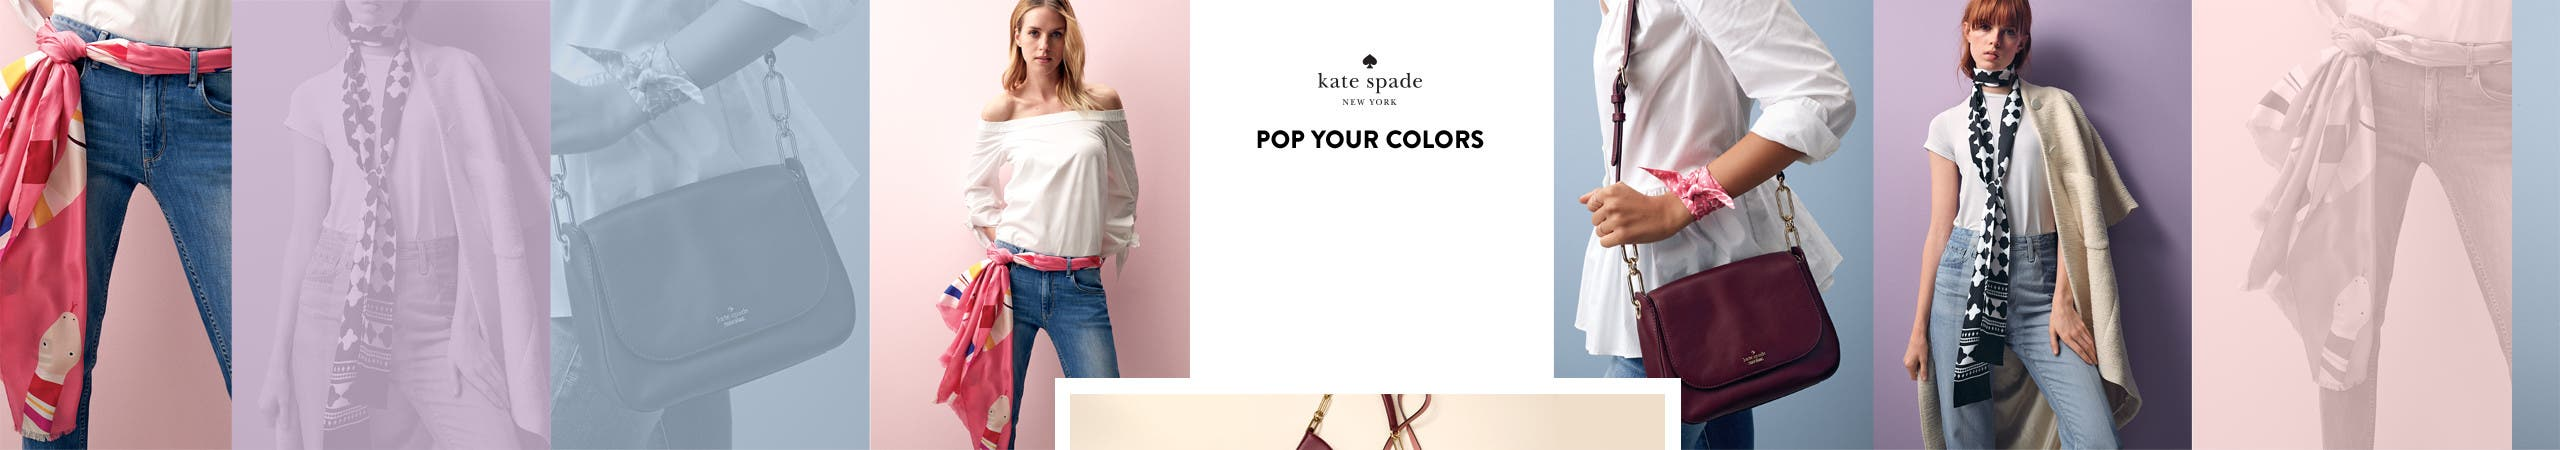 Pop your colors: bright accessories with white tops.